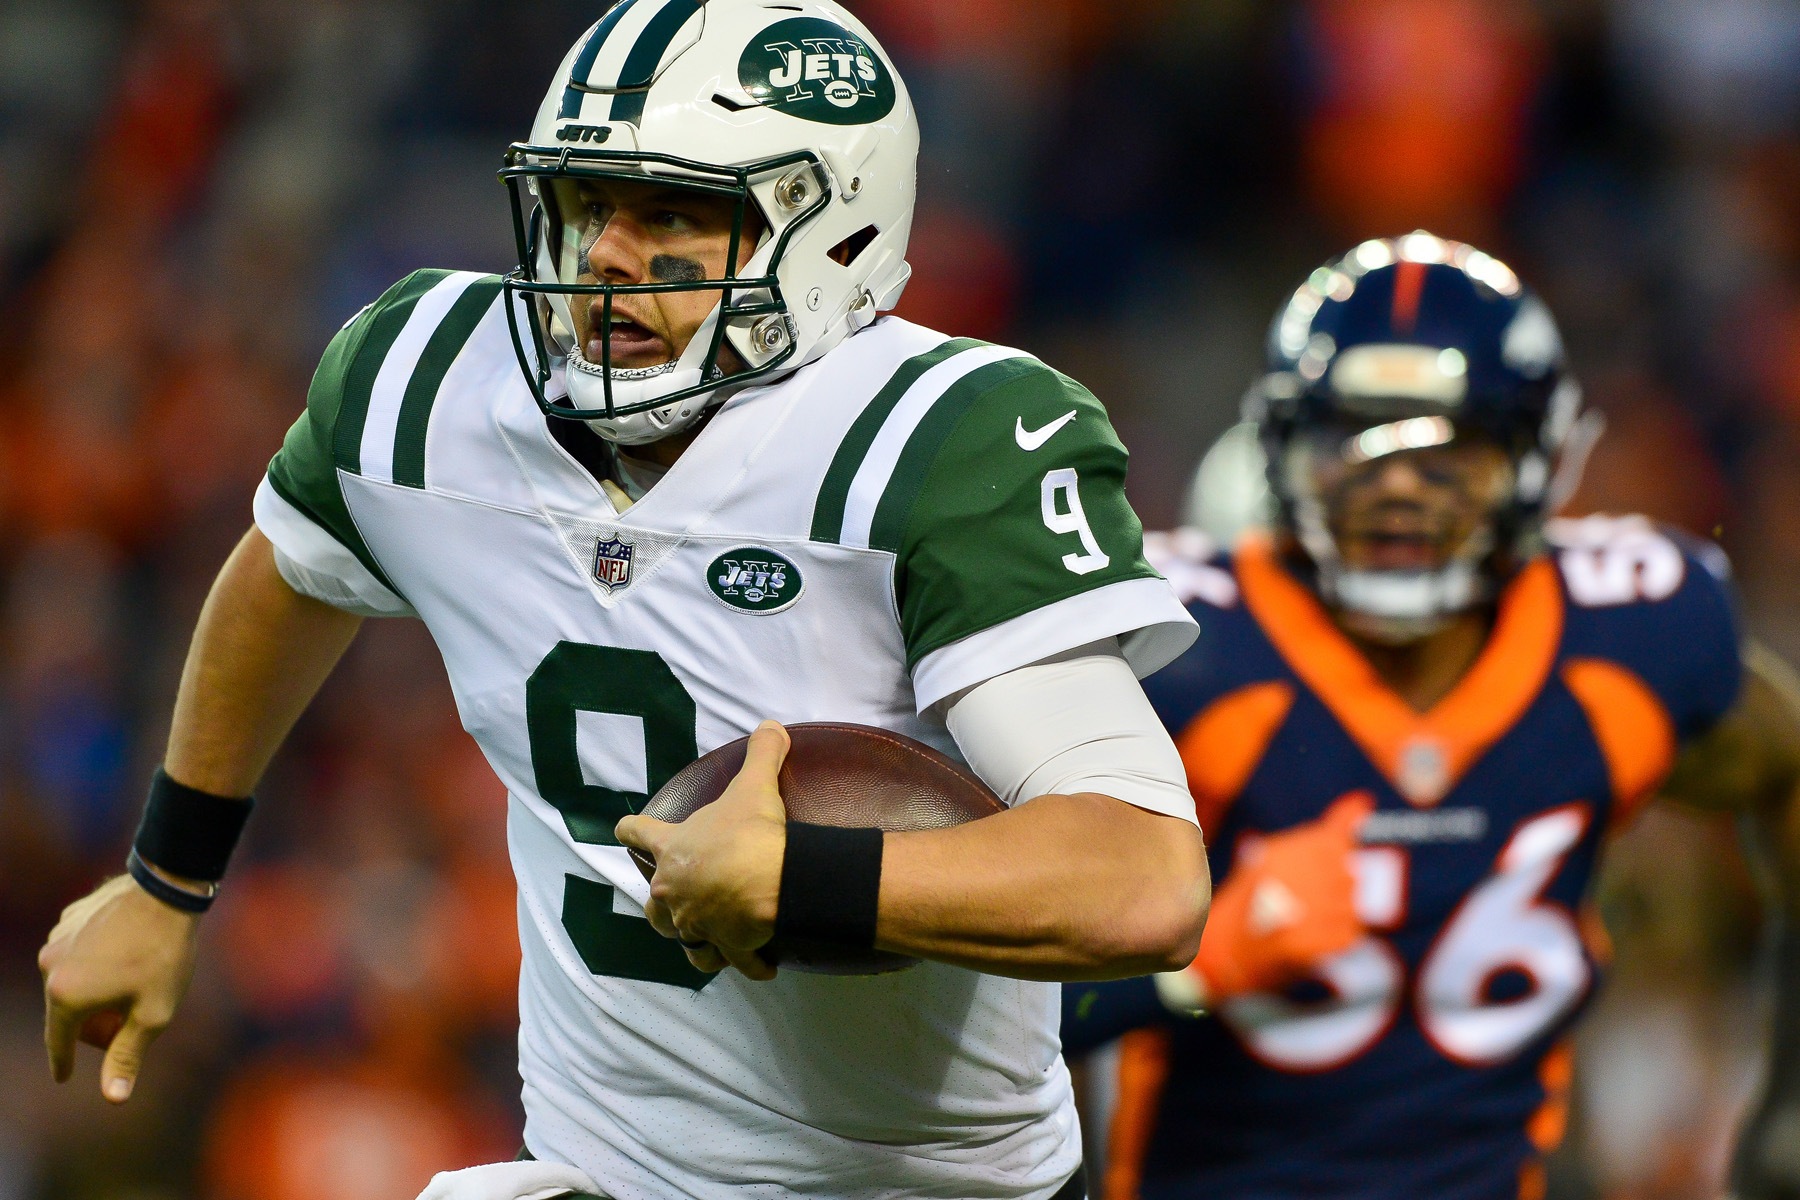 This is Bryce Petty's last chance to save his Jets career